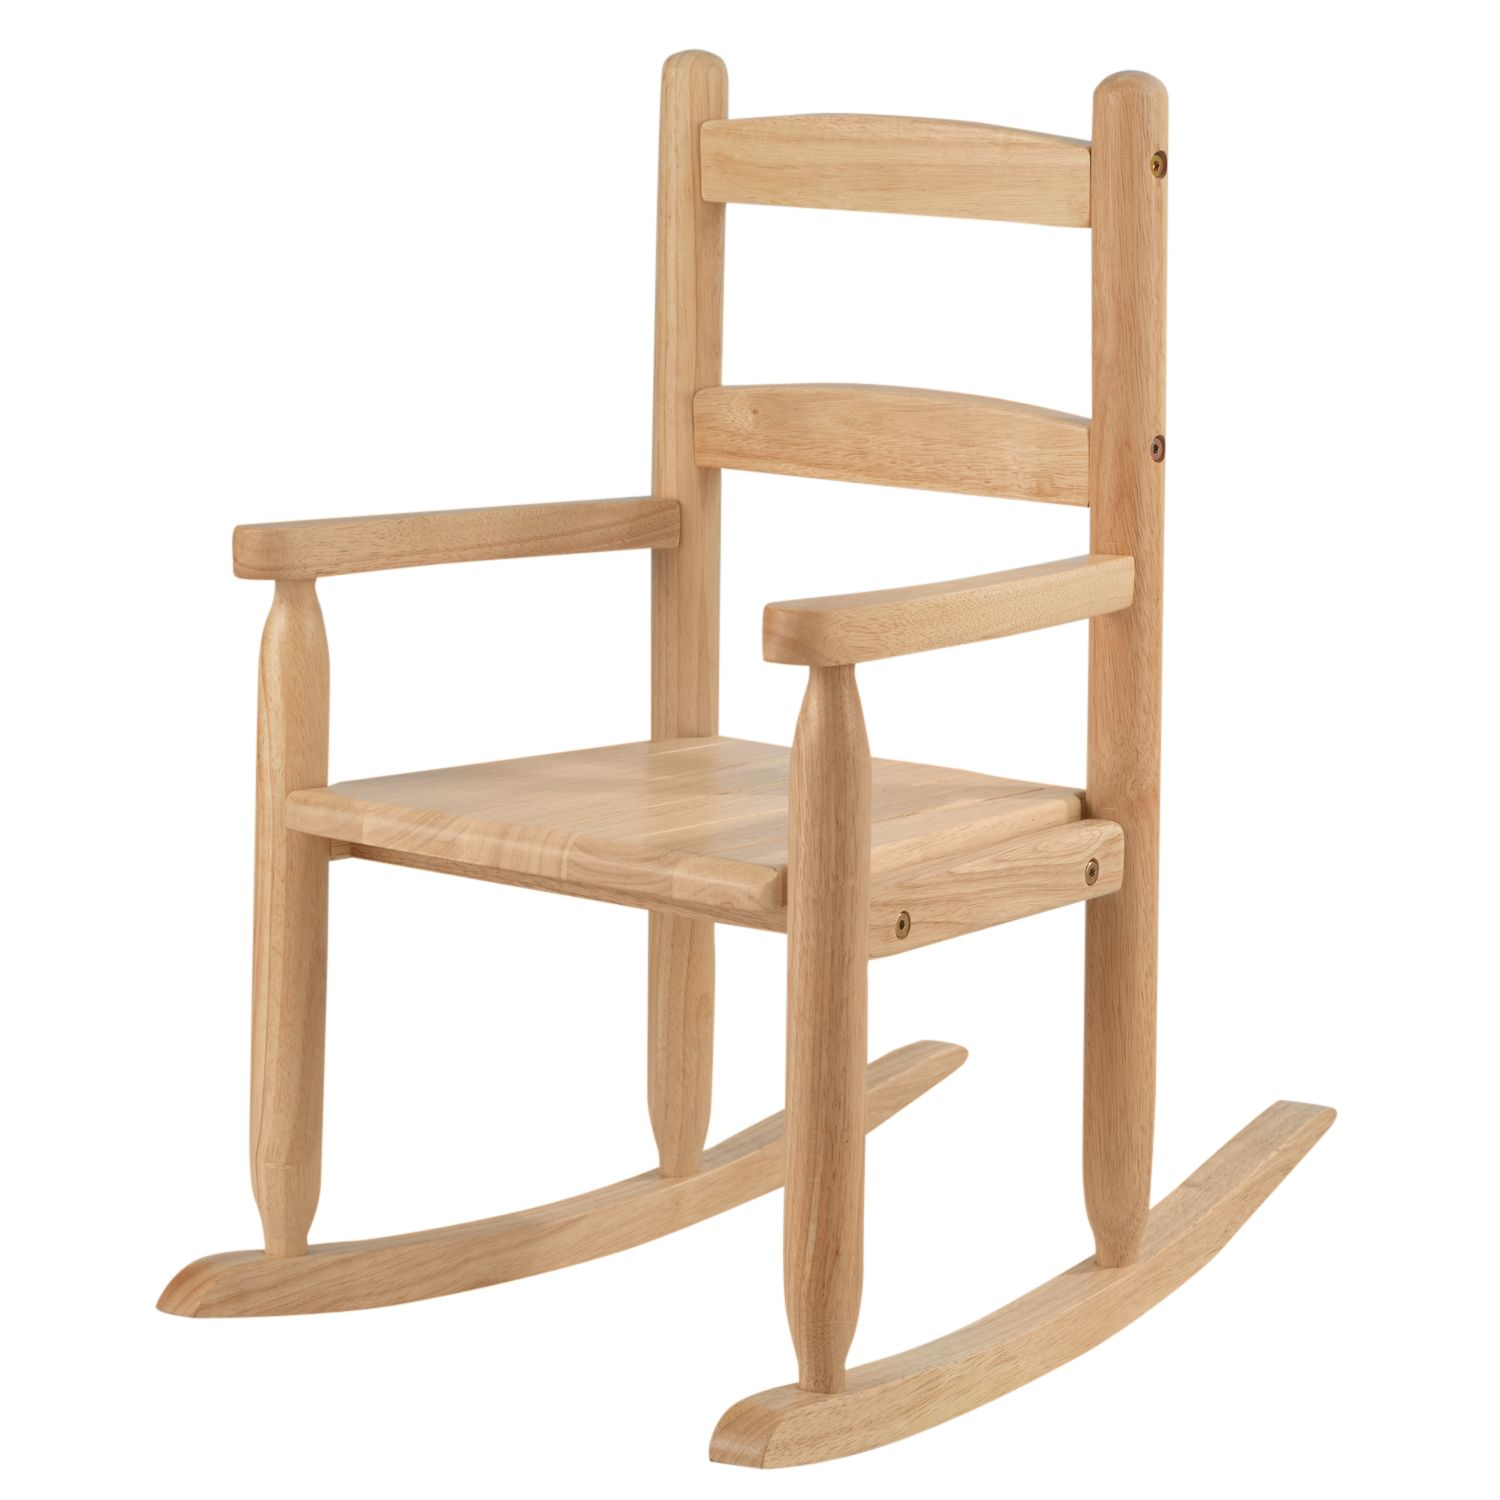 KidKraft® Two Slat Rocking Chair   Natural